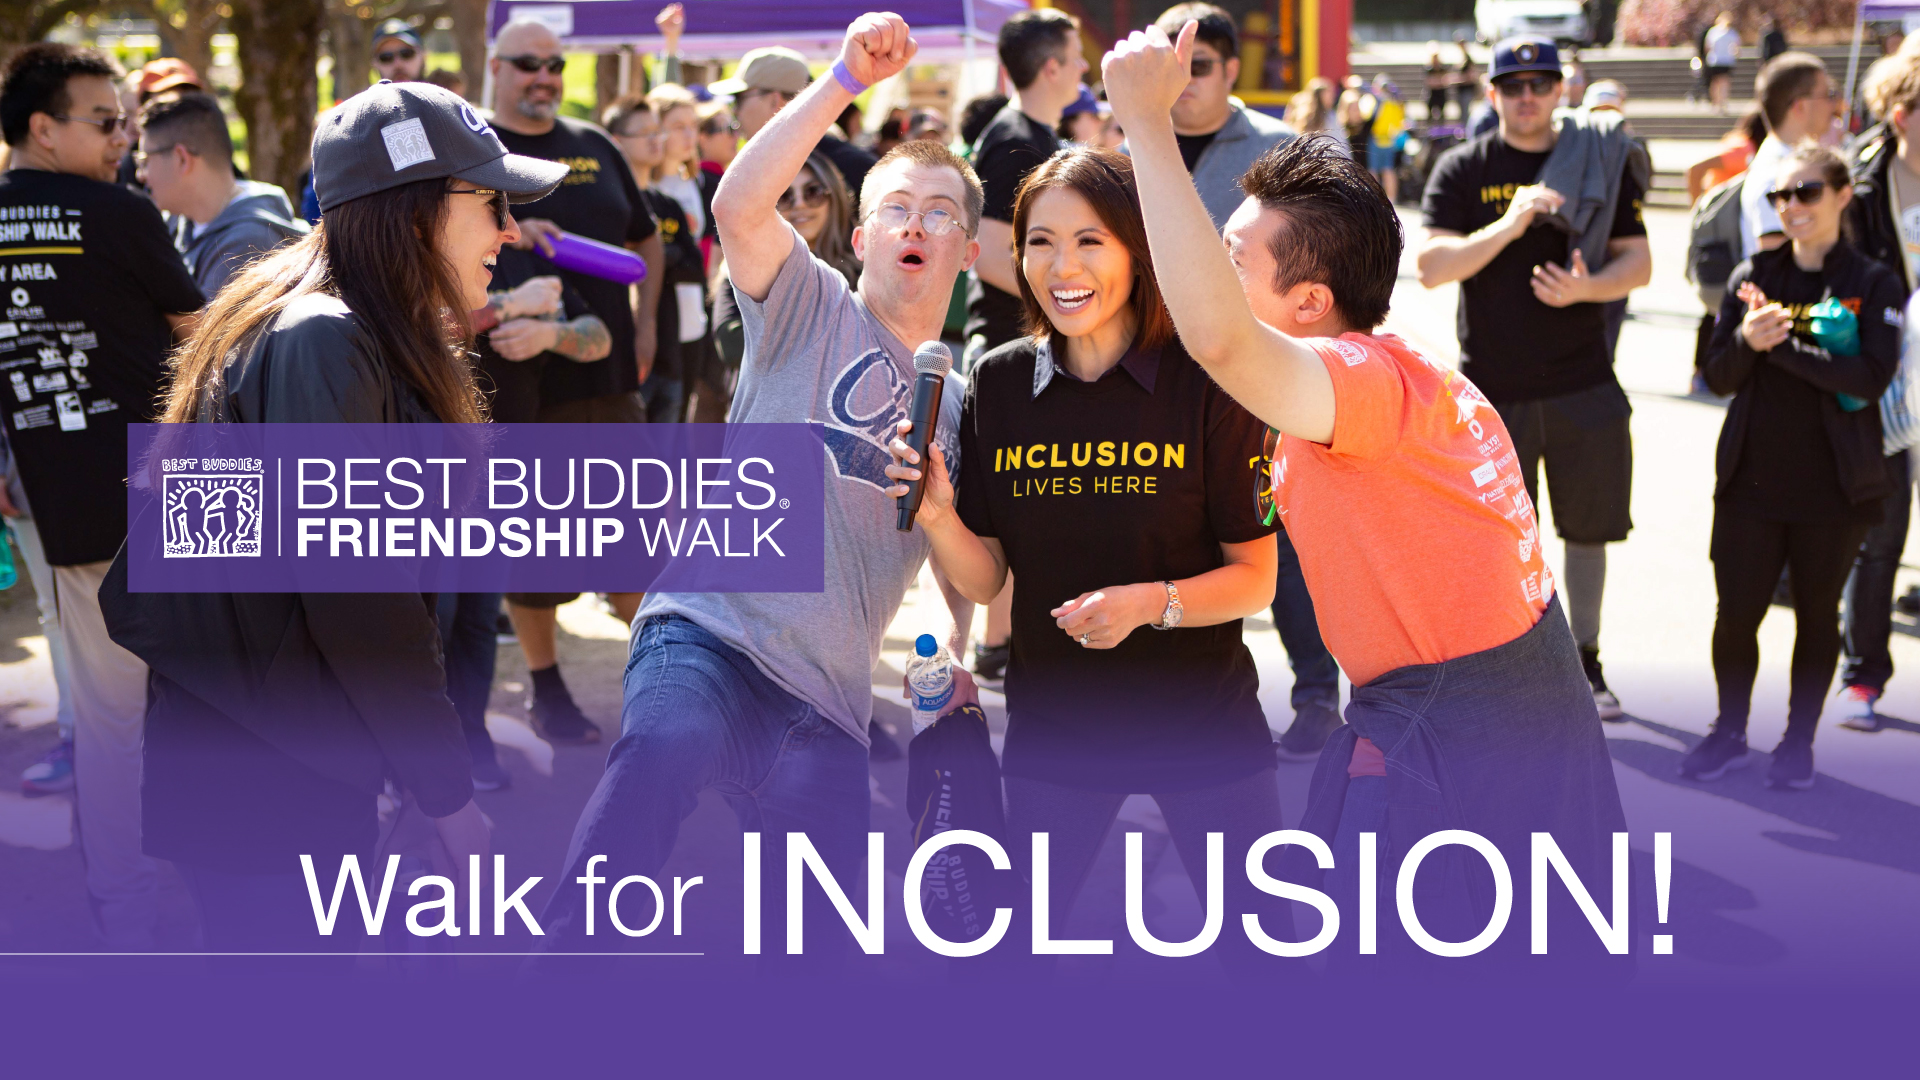 Best Buddies Friendship Walk Promotional Image